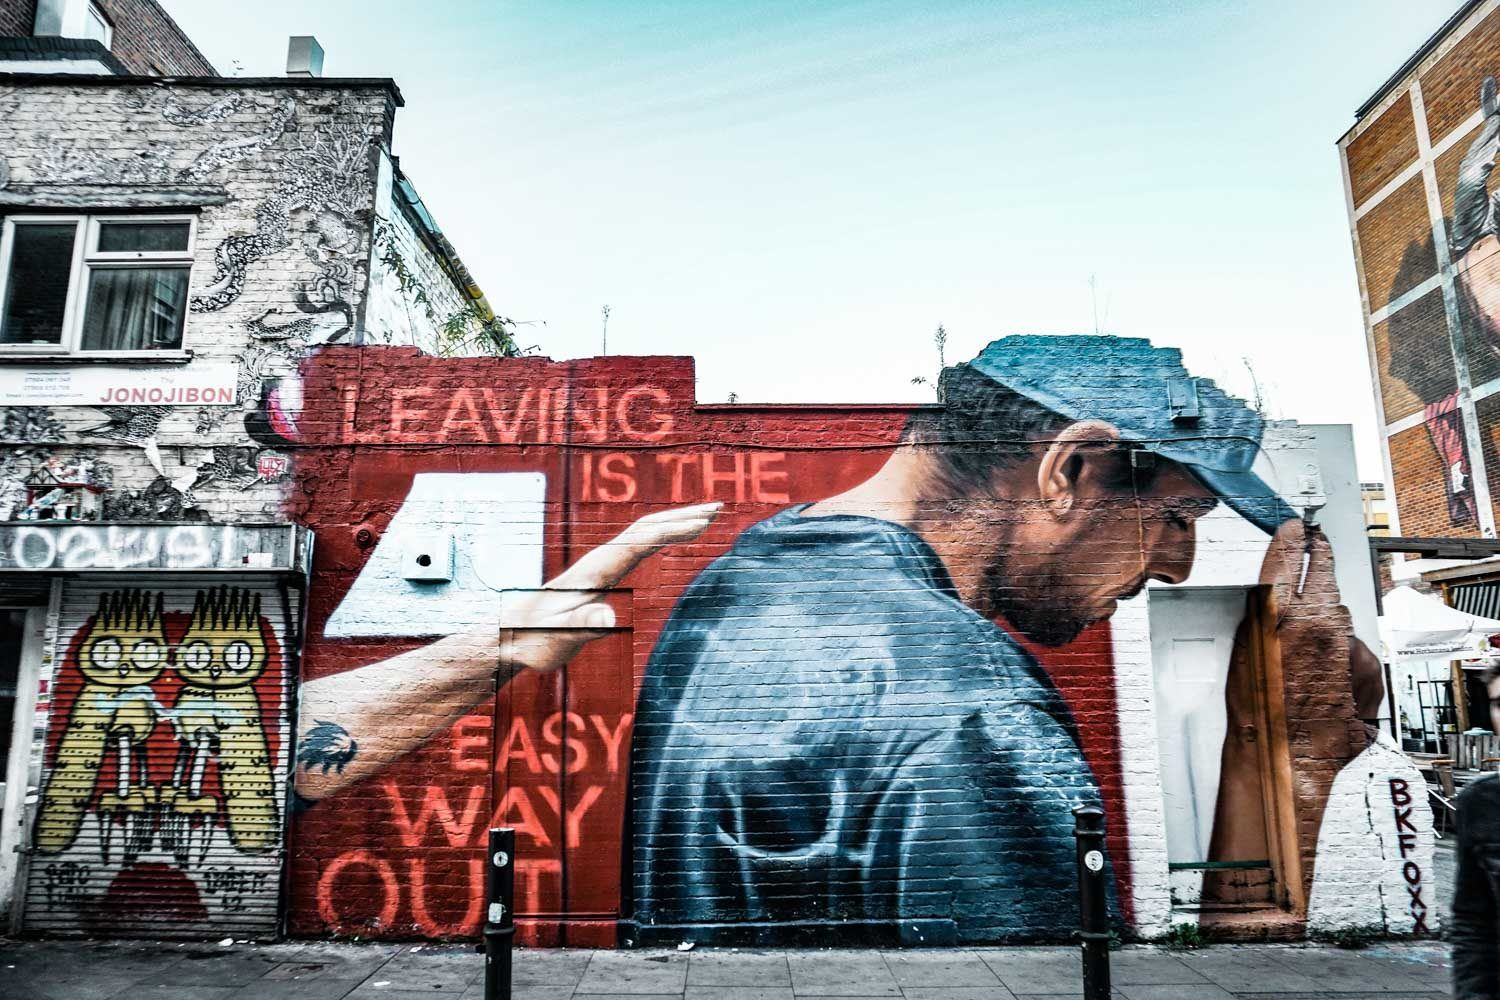 Leaving is the easy way out - mural in Shoreditch, London